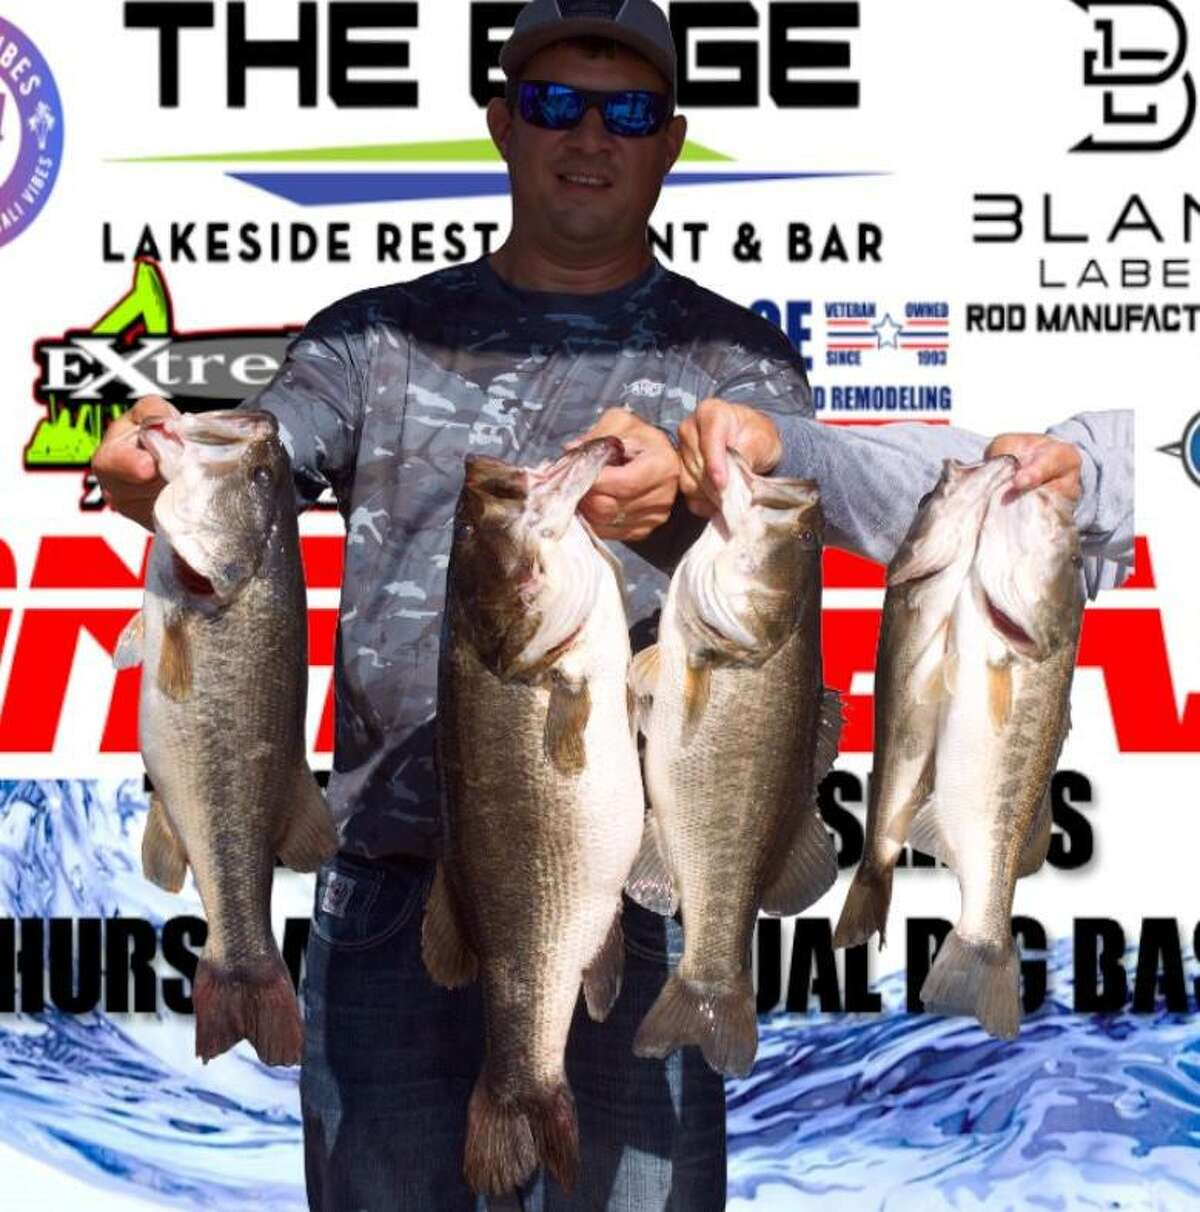 Jonathan Roberson came in first place in the CONROEBASS Mid-Day Madness Championship with a stringer weight of 23.65 pounds.